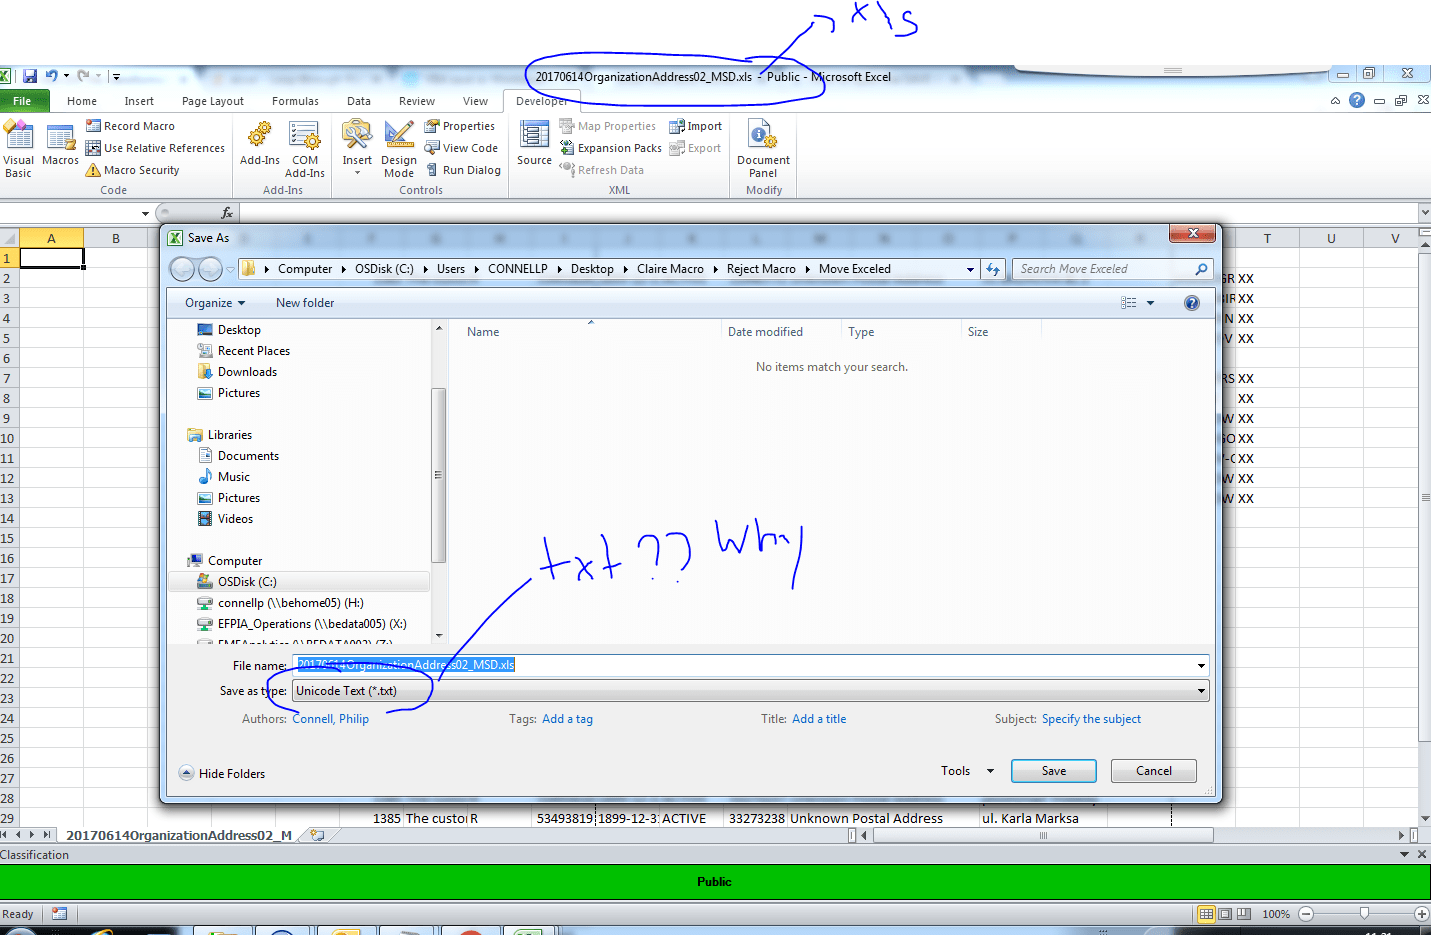 Vba Exp File Transformed To Excel File Not Allowing Code To Work